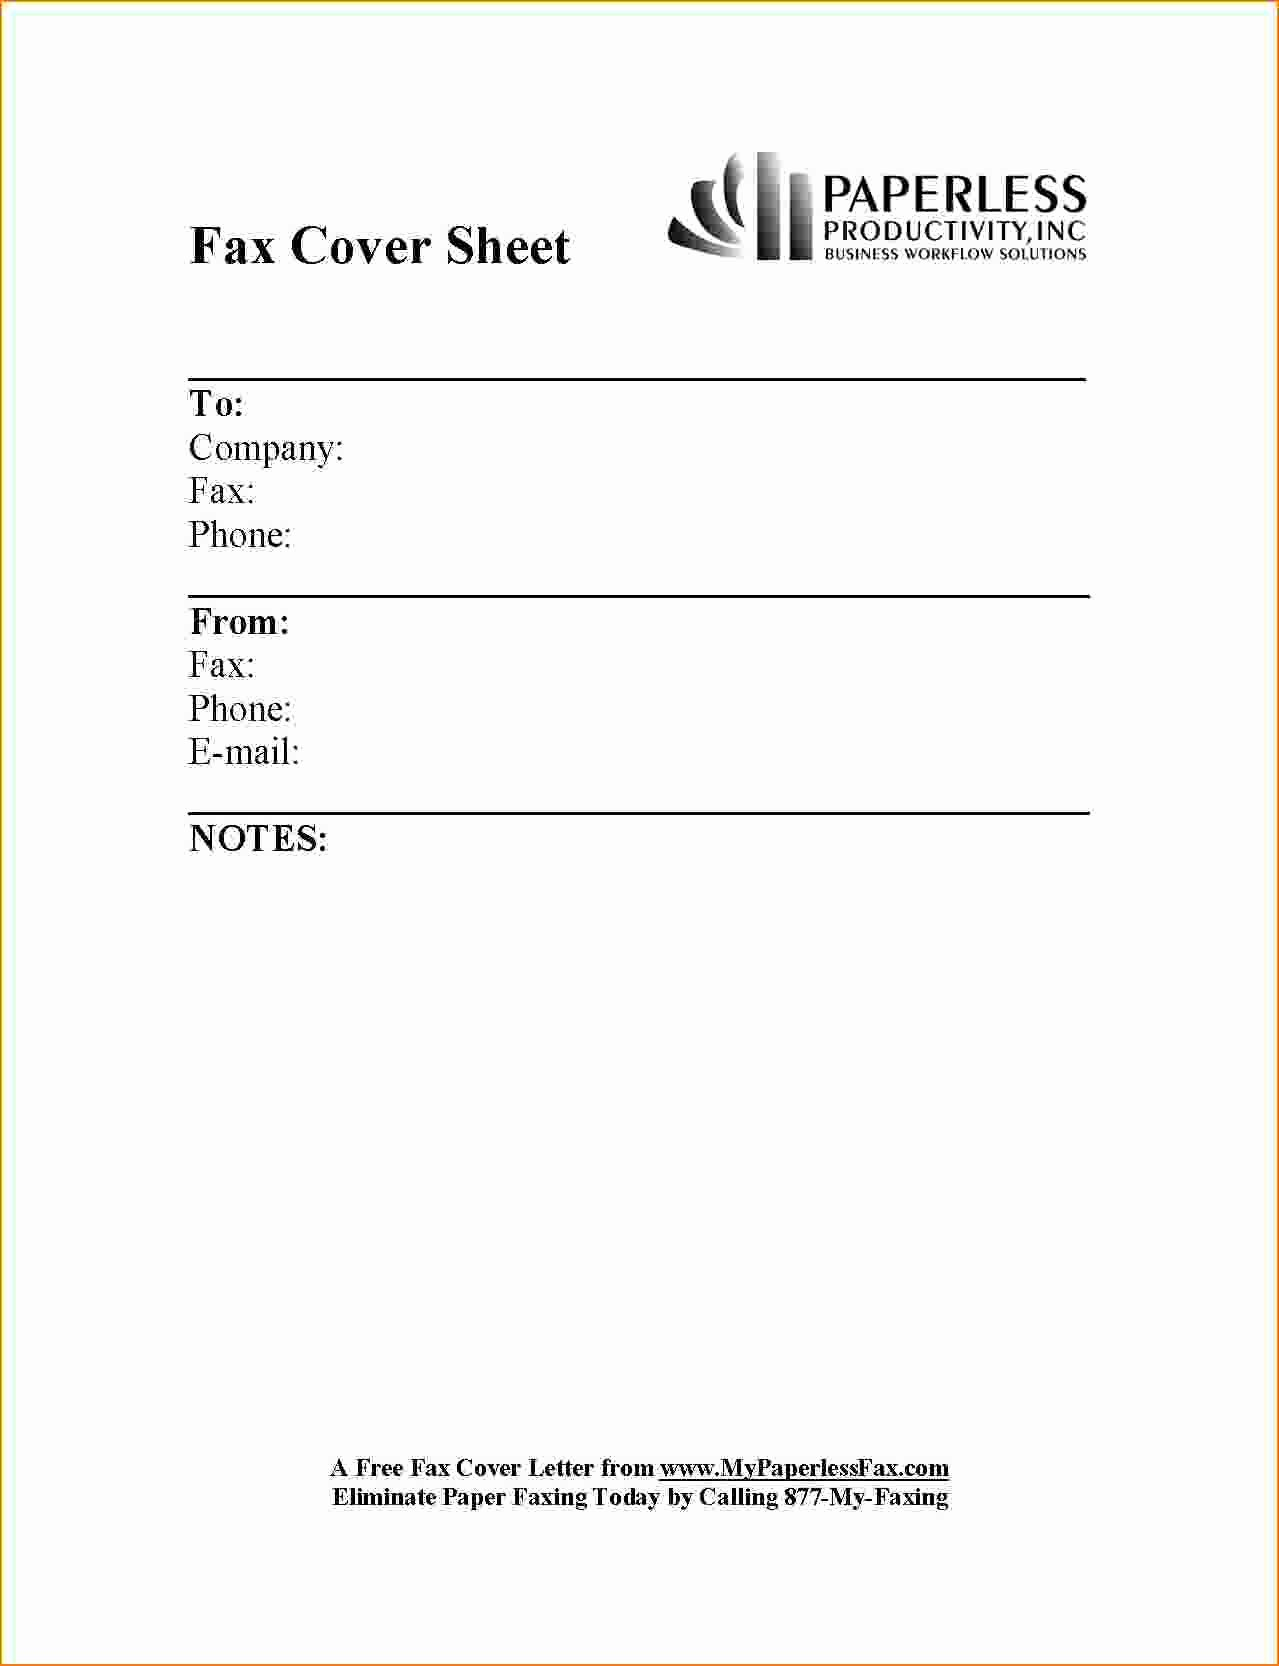 Example Of Fax Cover Sheet Lovely 6 Example Fax Cover Sheet